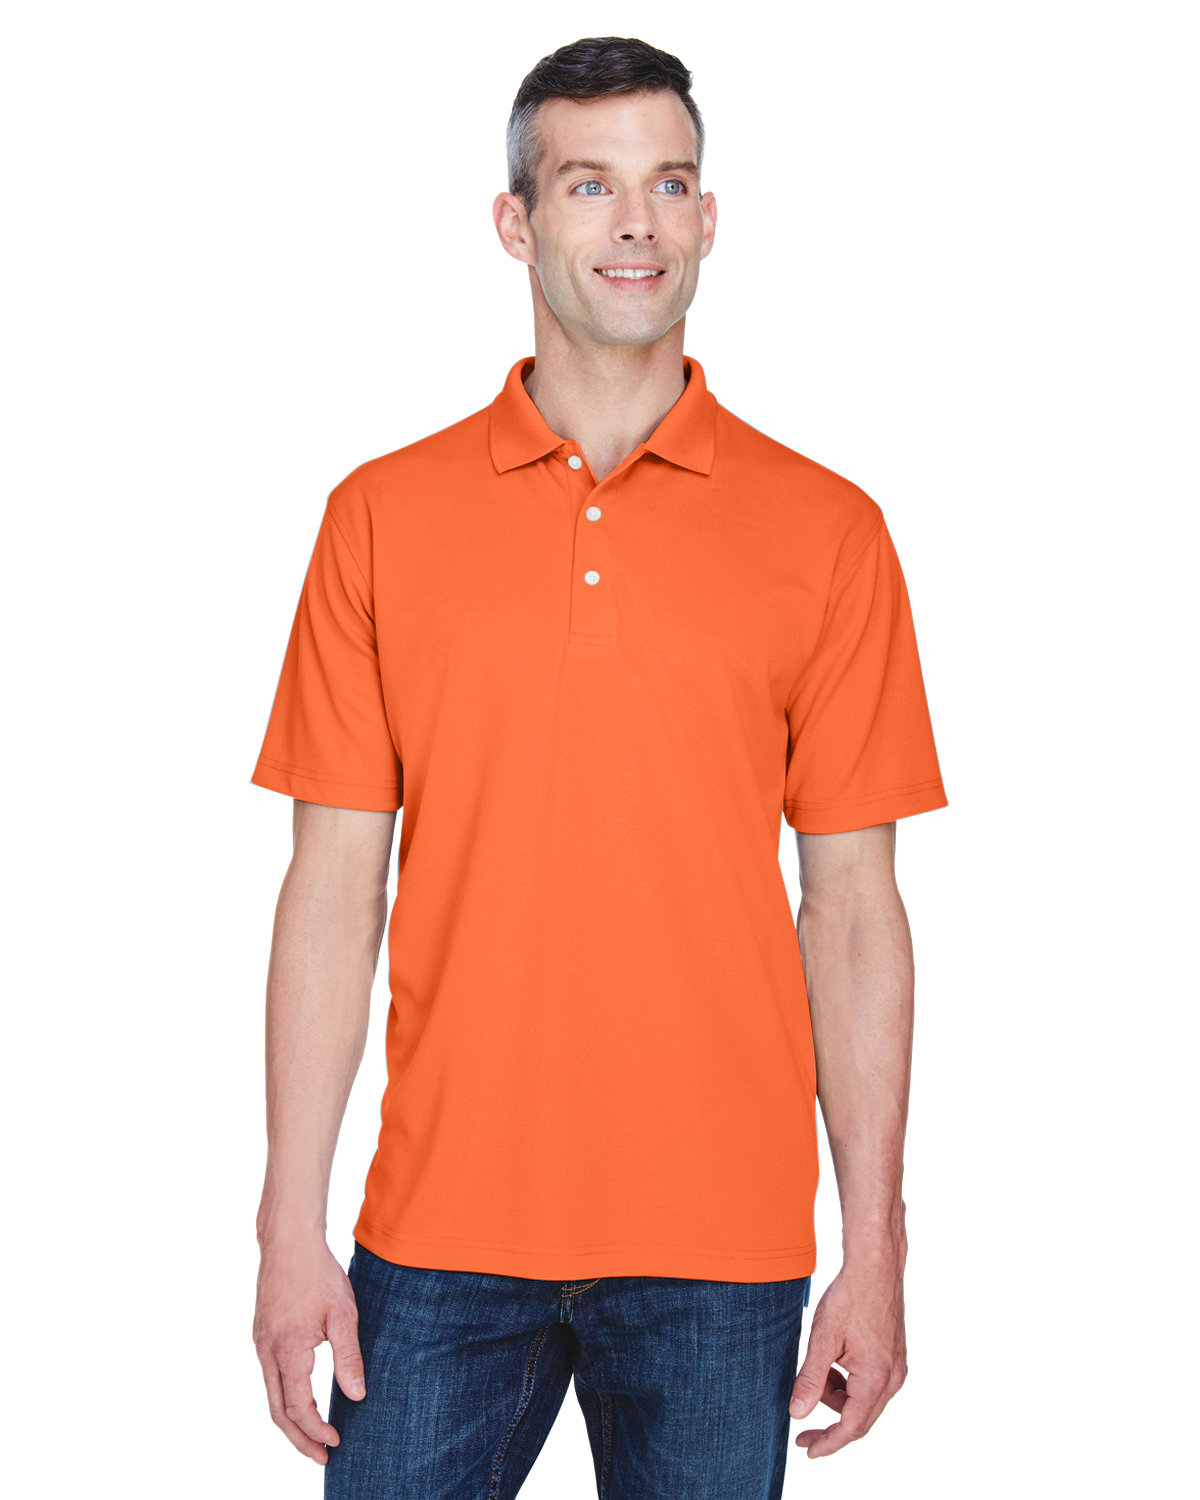 UltraClub Men's Cool & Dry Stain-Release Performance Polo ORANGE